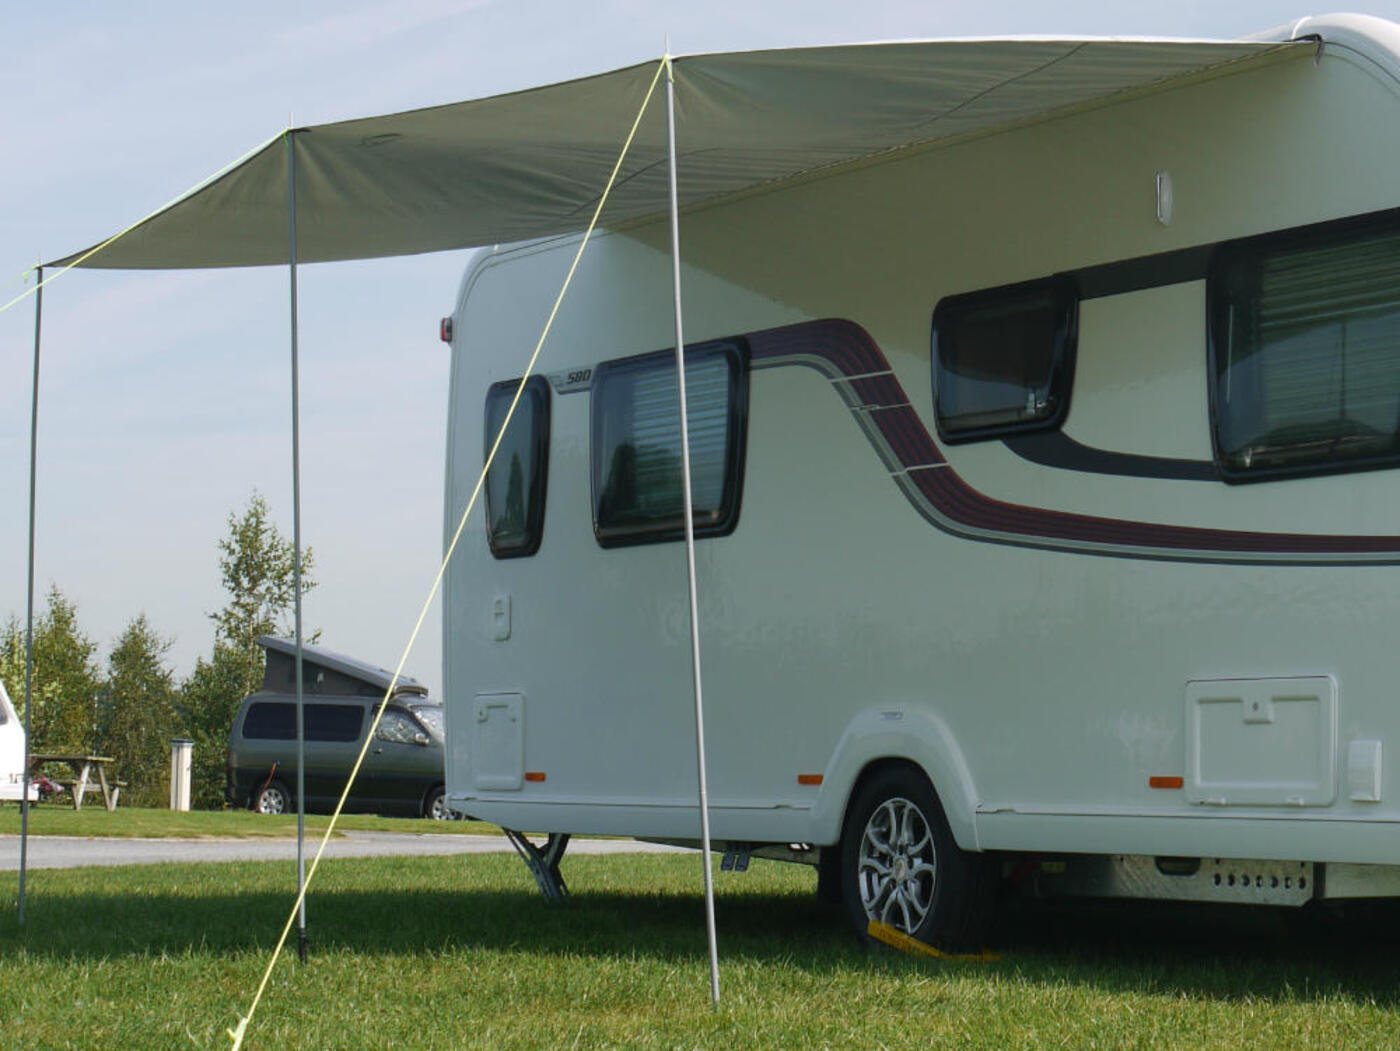 Accessory Shop Awnings Amp Accessories Canopies Amp Shades